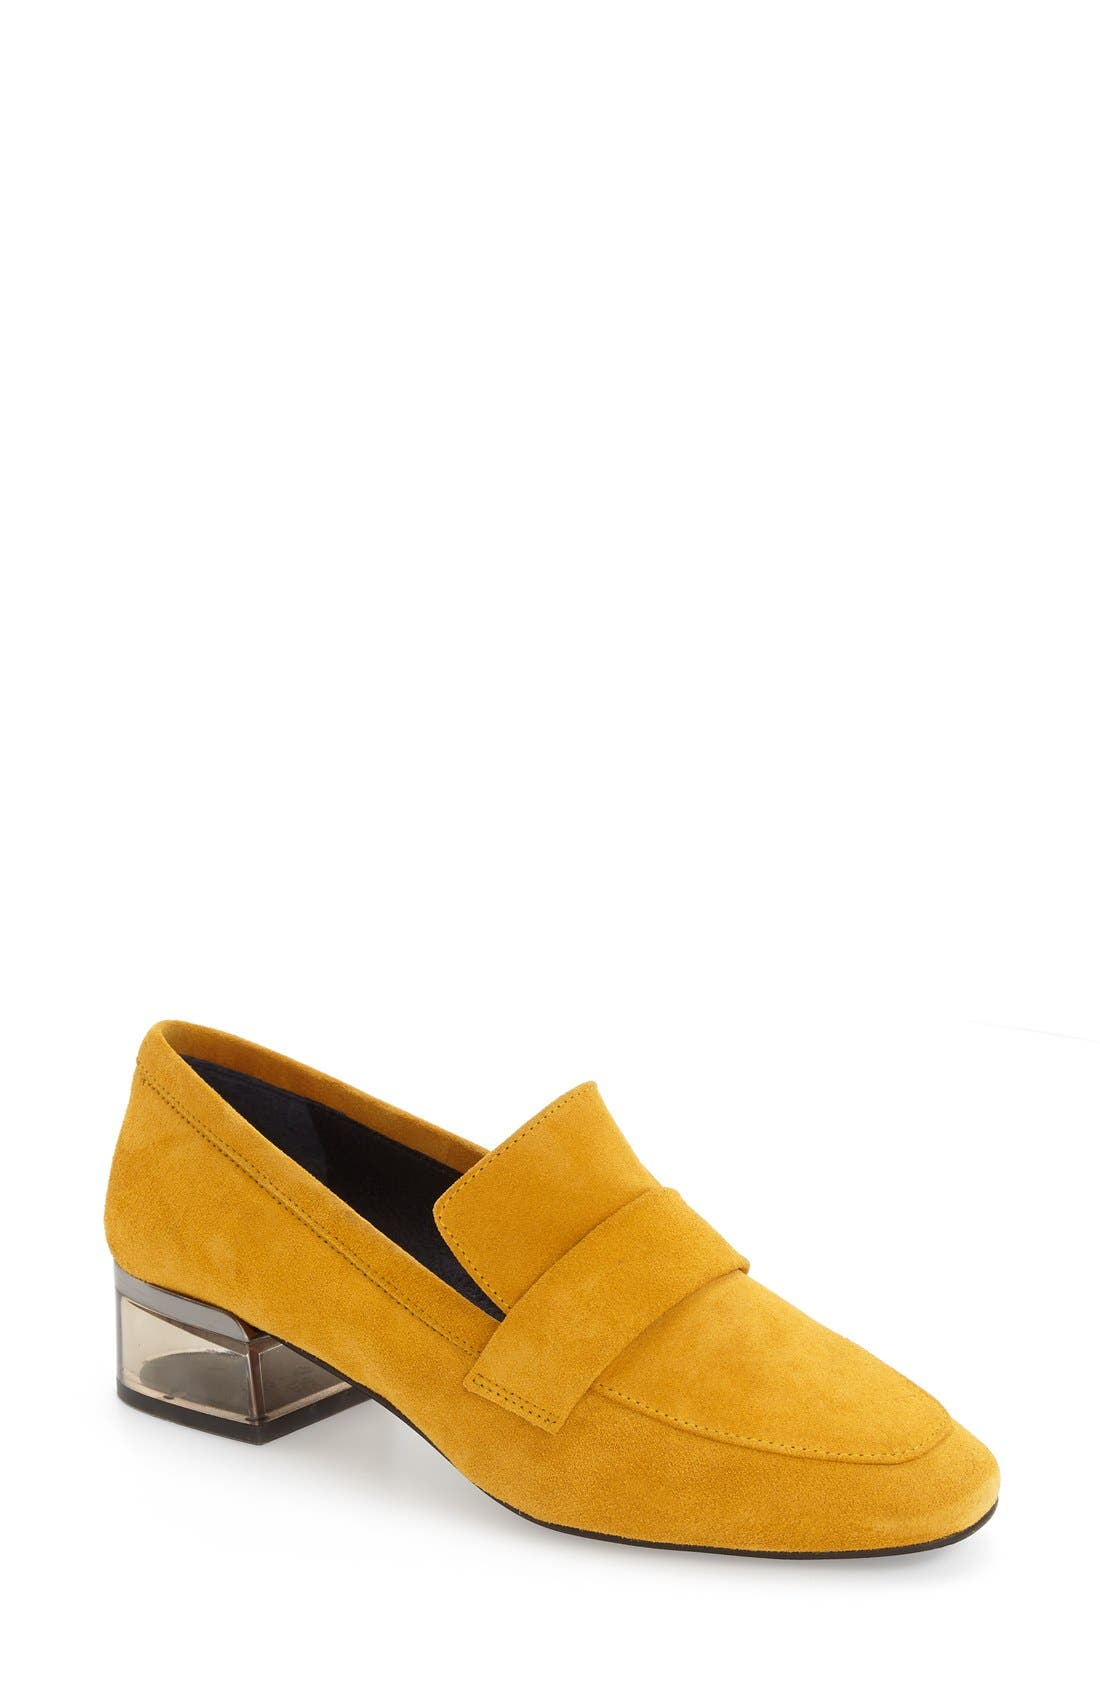 Alternate Image 1 Selected - Topshop 'Karrot' Clear Heel Loafer (Women)